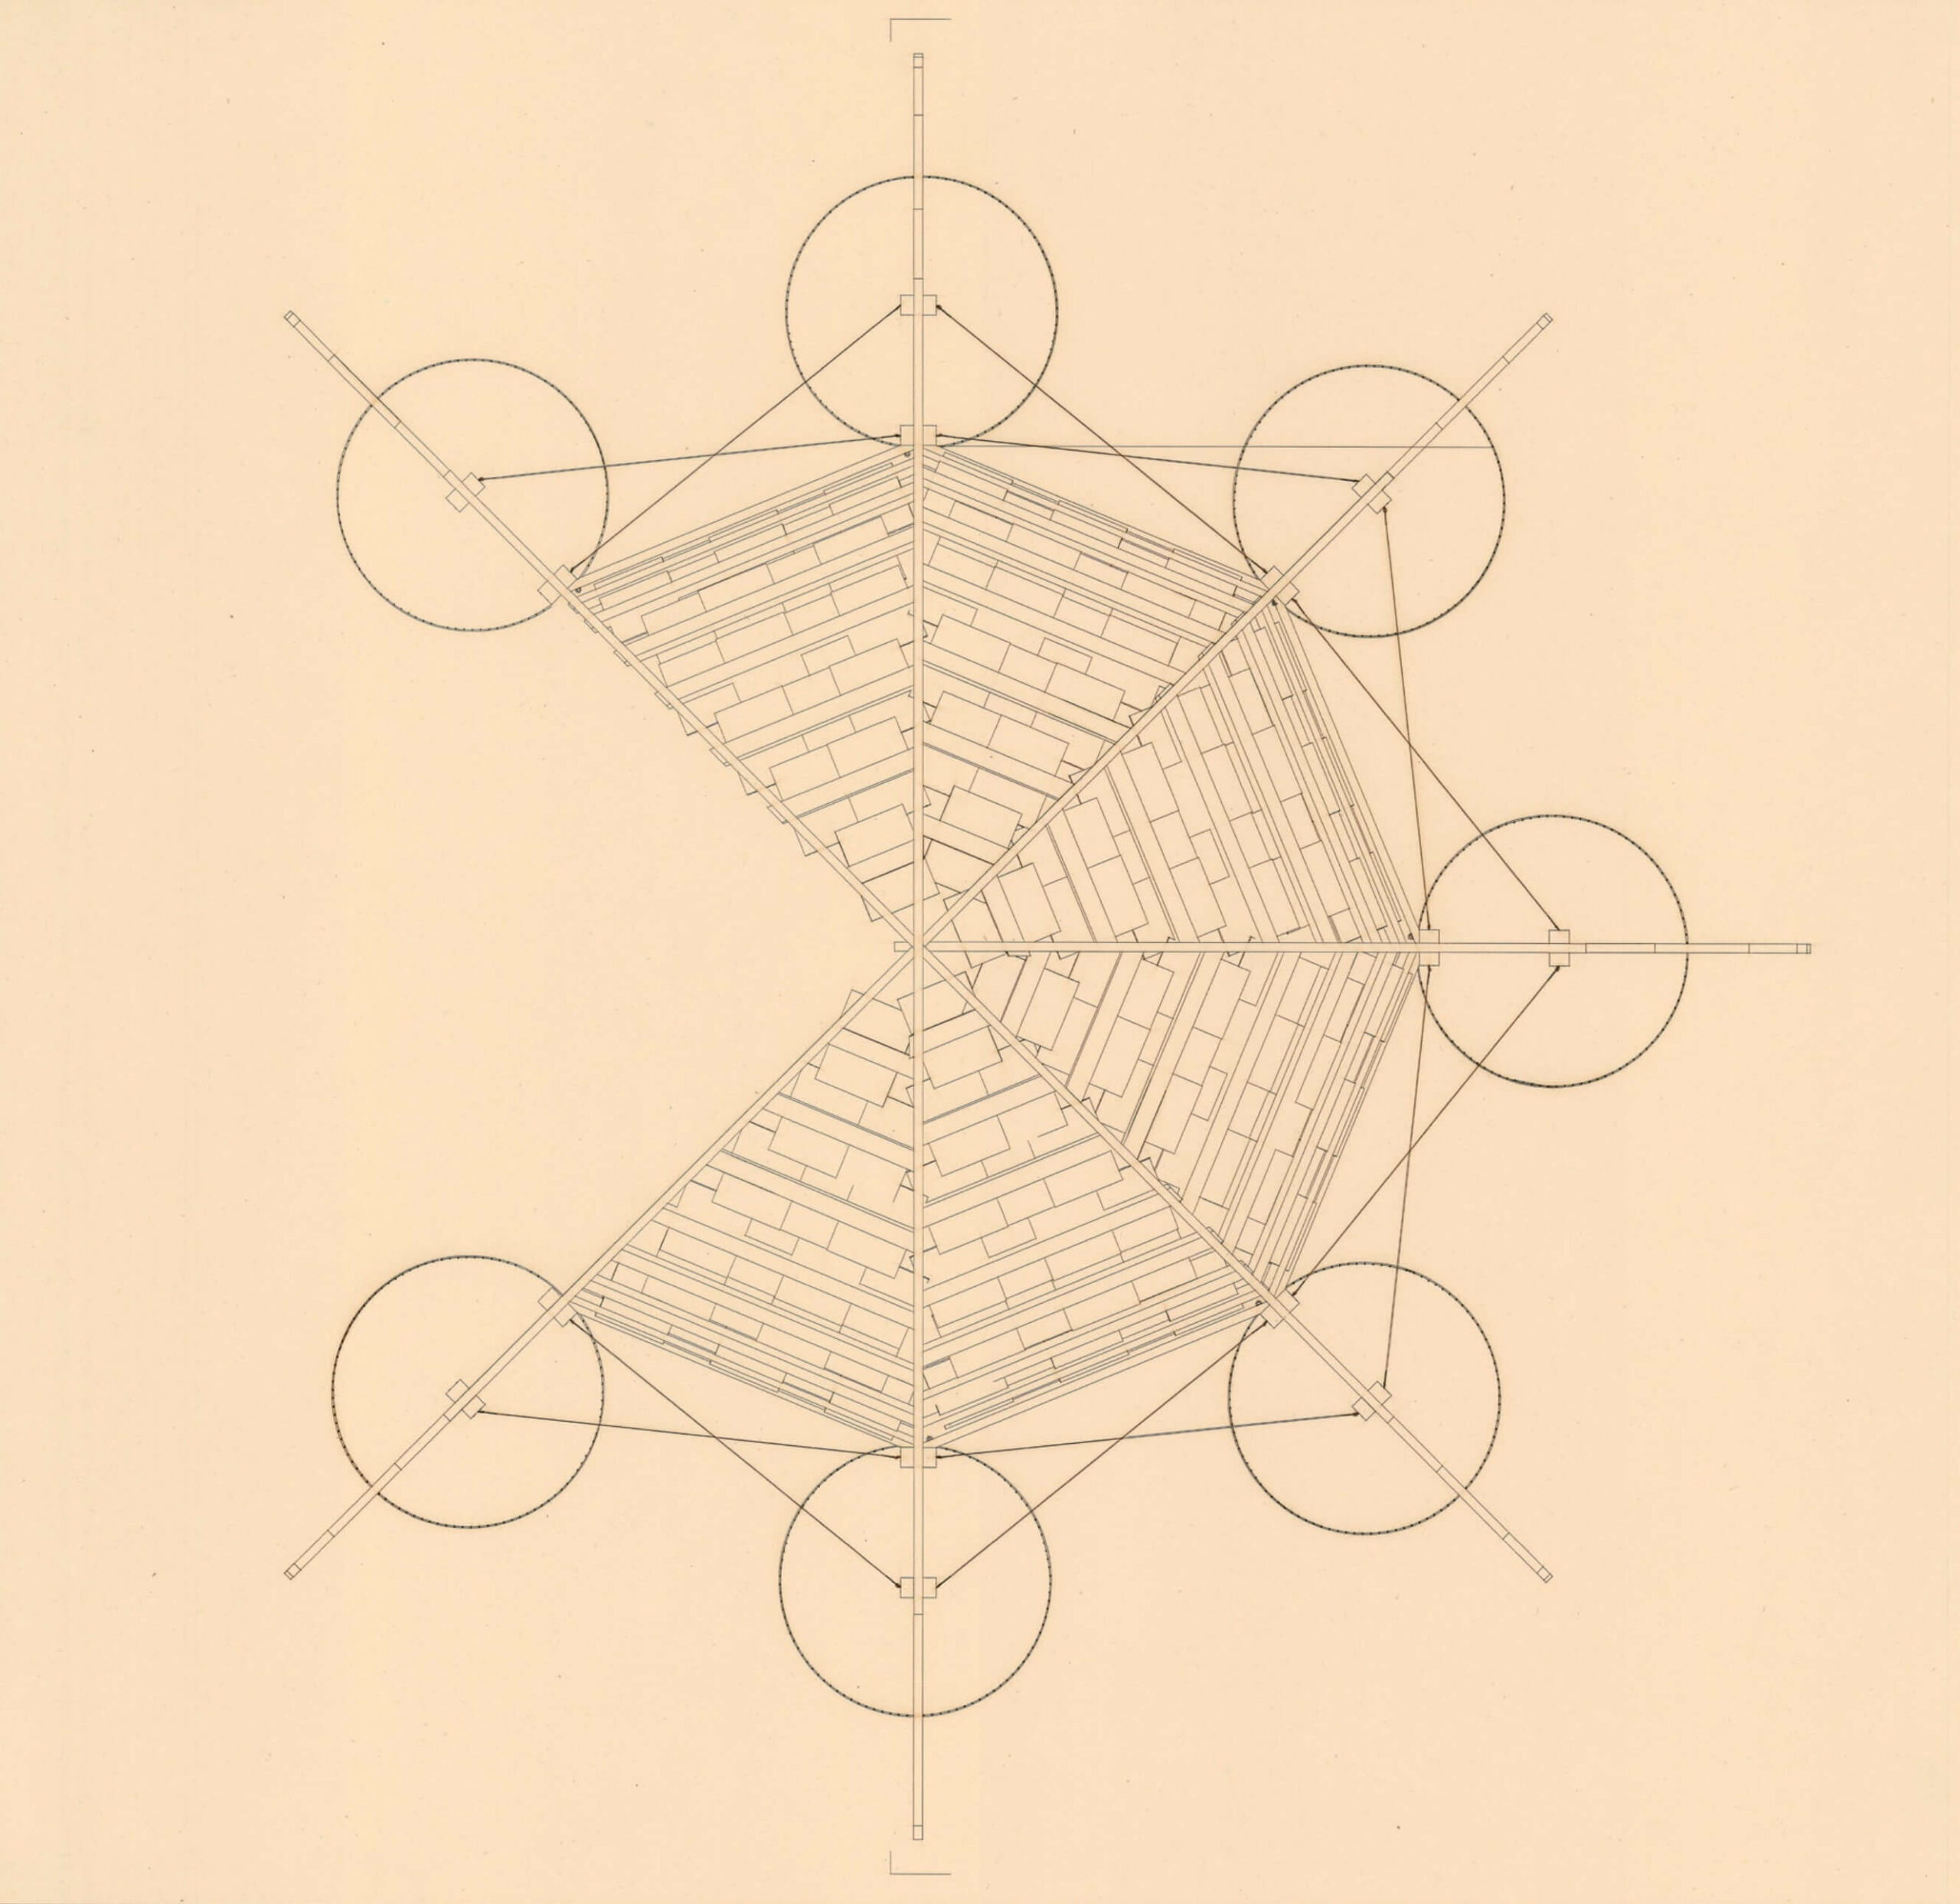 the pavilion is drawn on the plans using an octogone to generate the dome